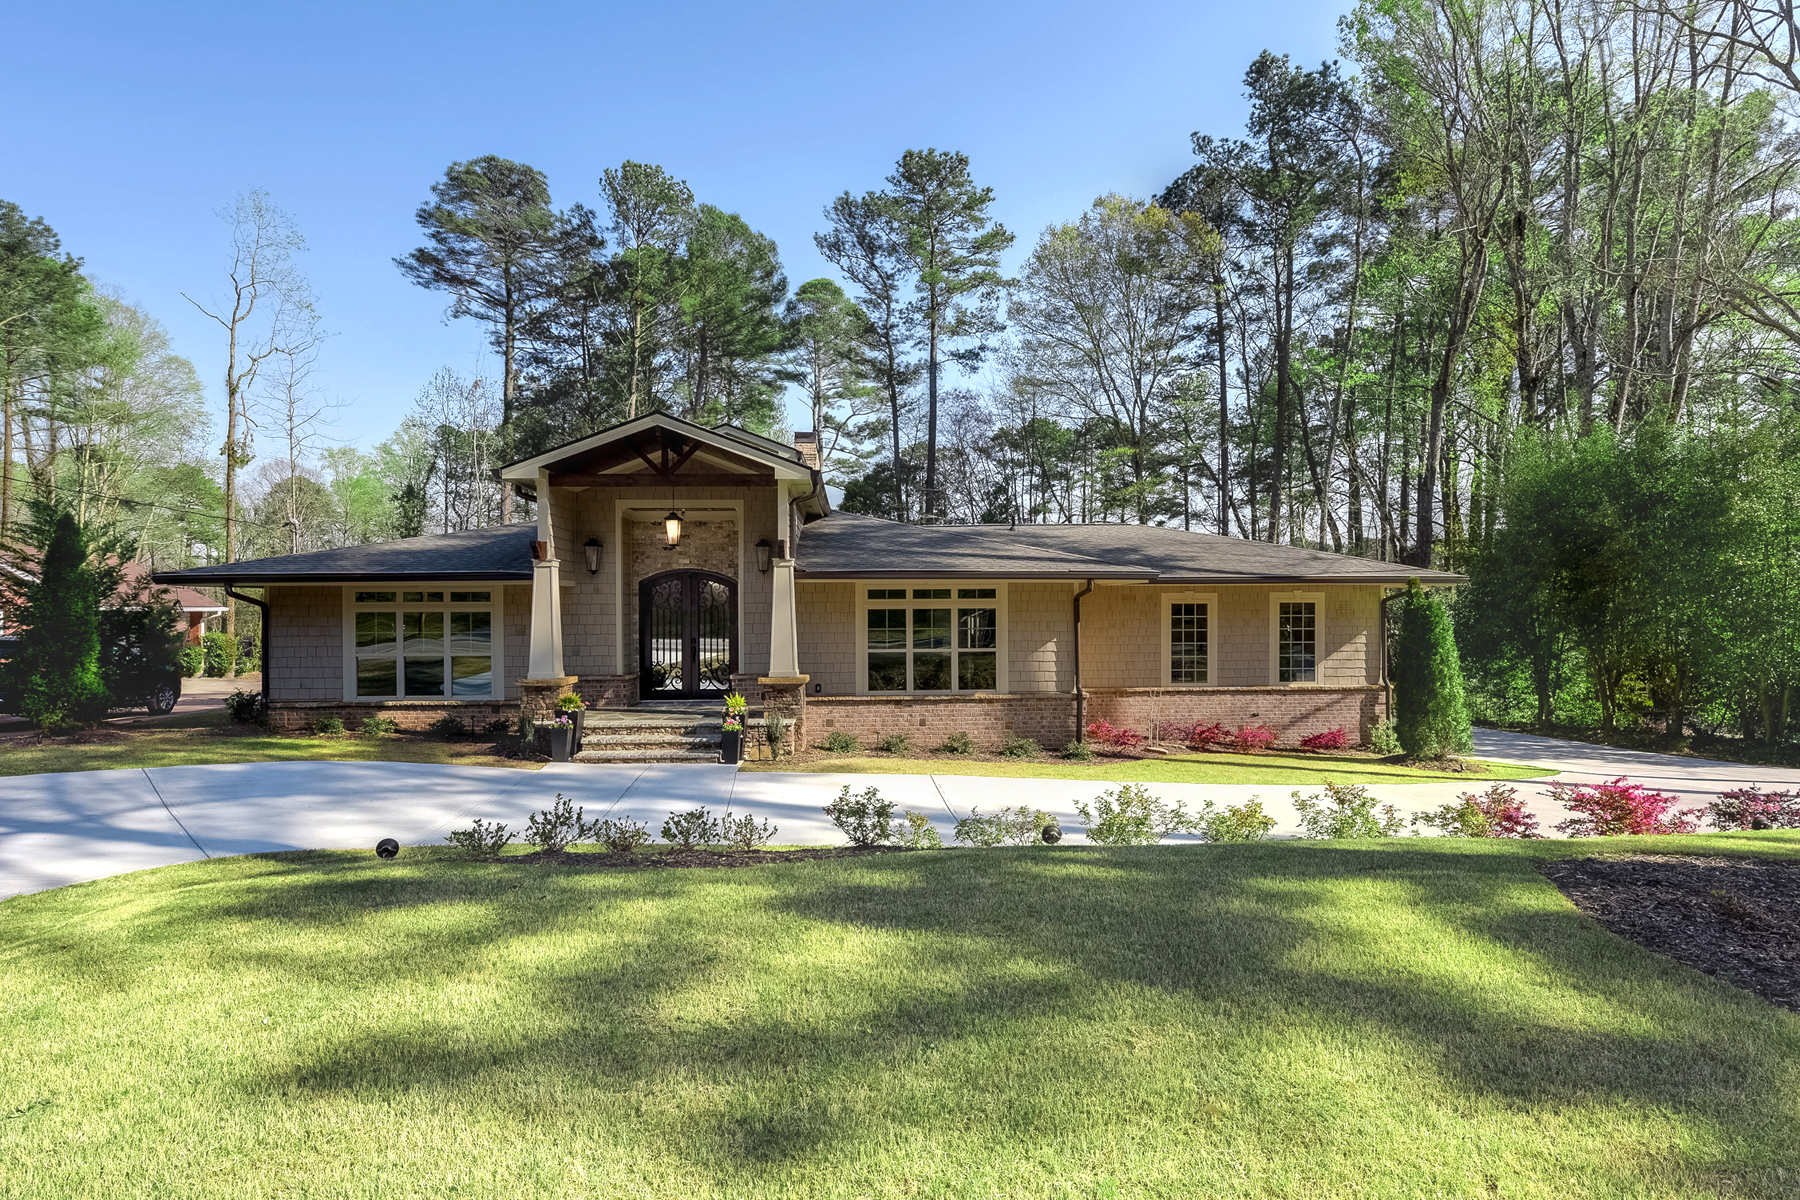 Villa per Vendita alle ore Beautiful Sandy Springs Home 595 Spalding Drive Sandy Springs, Georgia, 30328 Stati Uniti